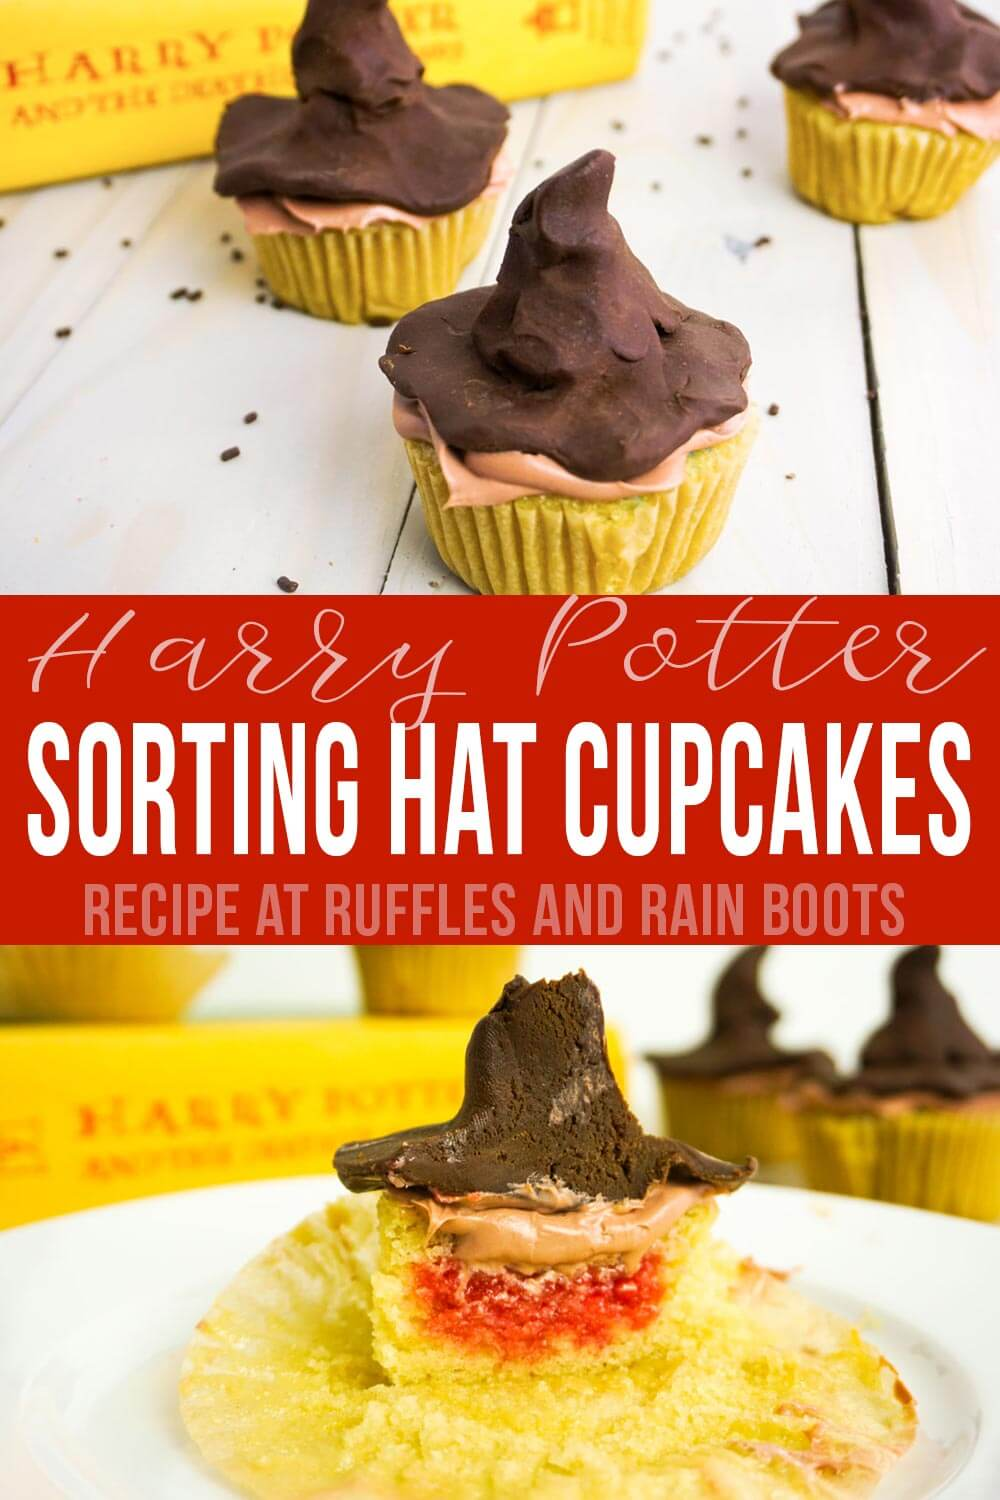 photo collage of harry potter cupcakes with text which reads Sorting Hat Cupcakes for Harry Potter Party